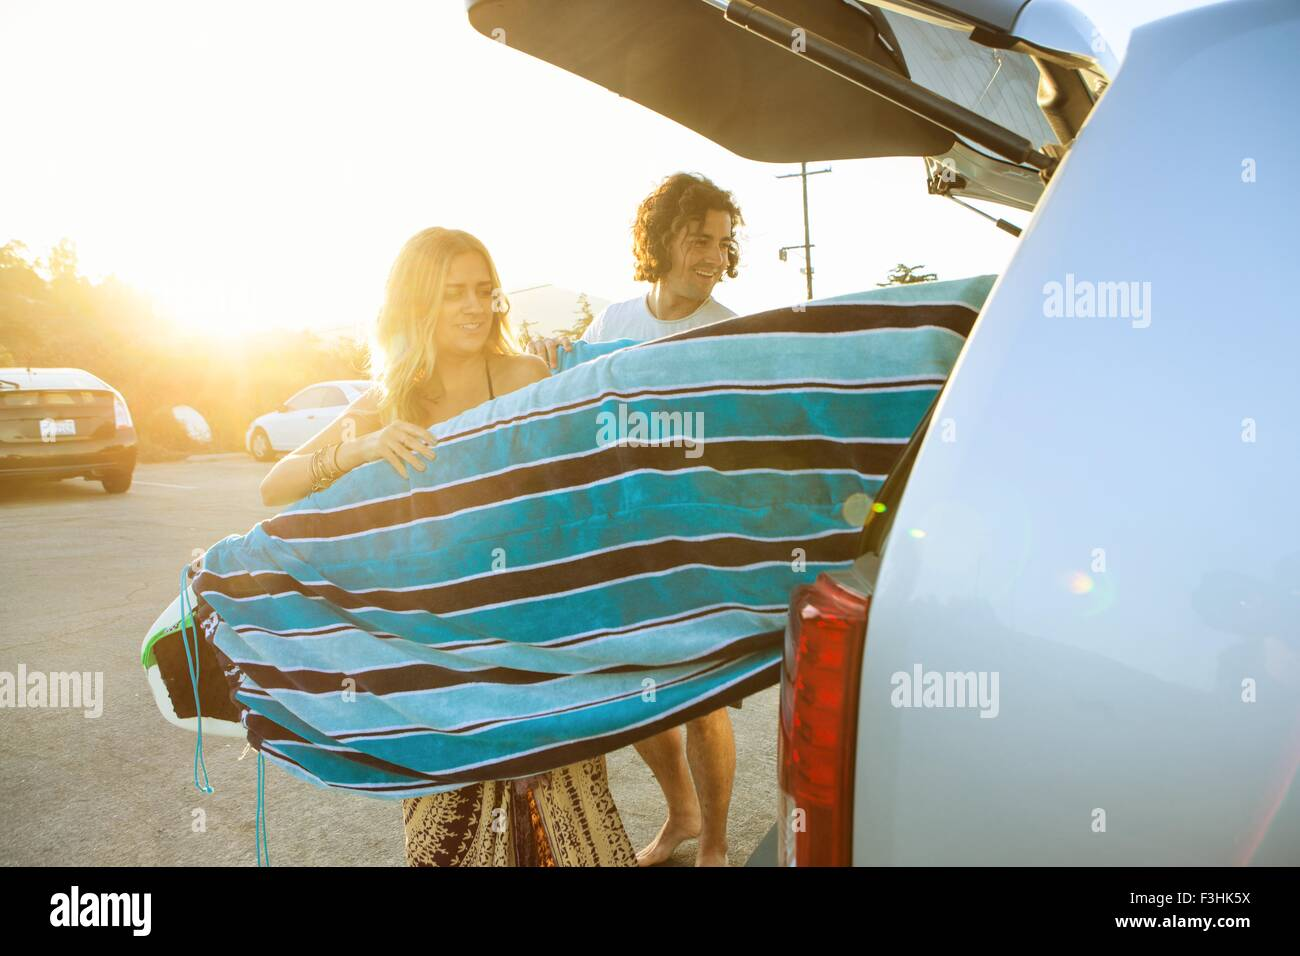 Couple taking surfboards from boot of car - Stock Image